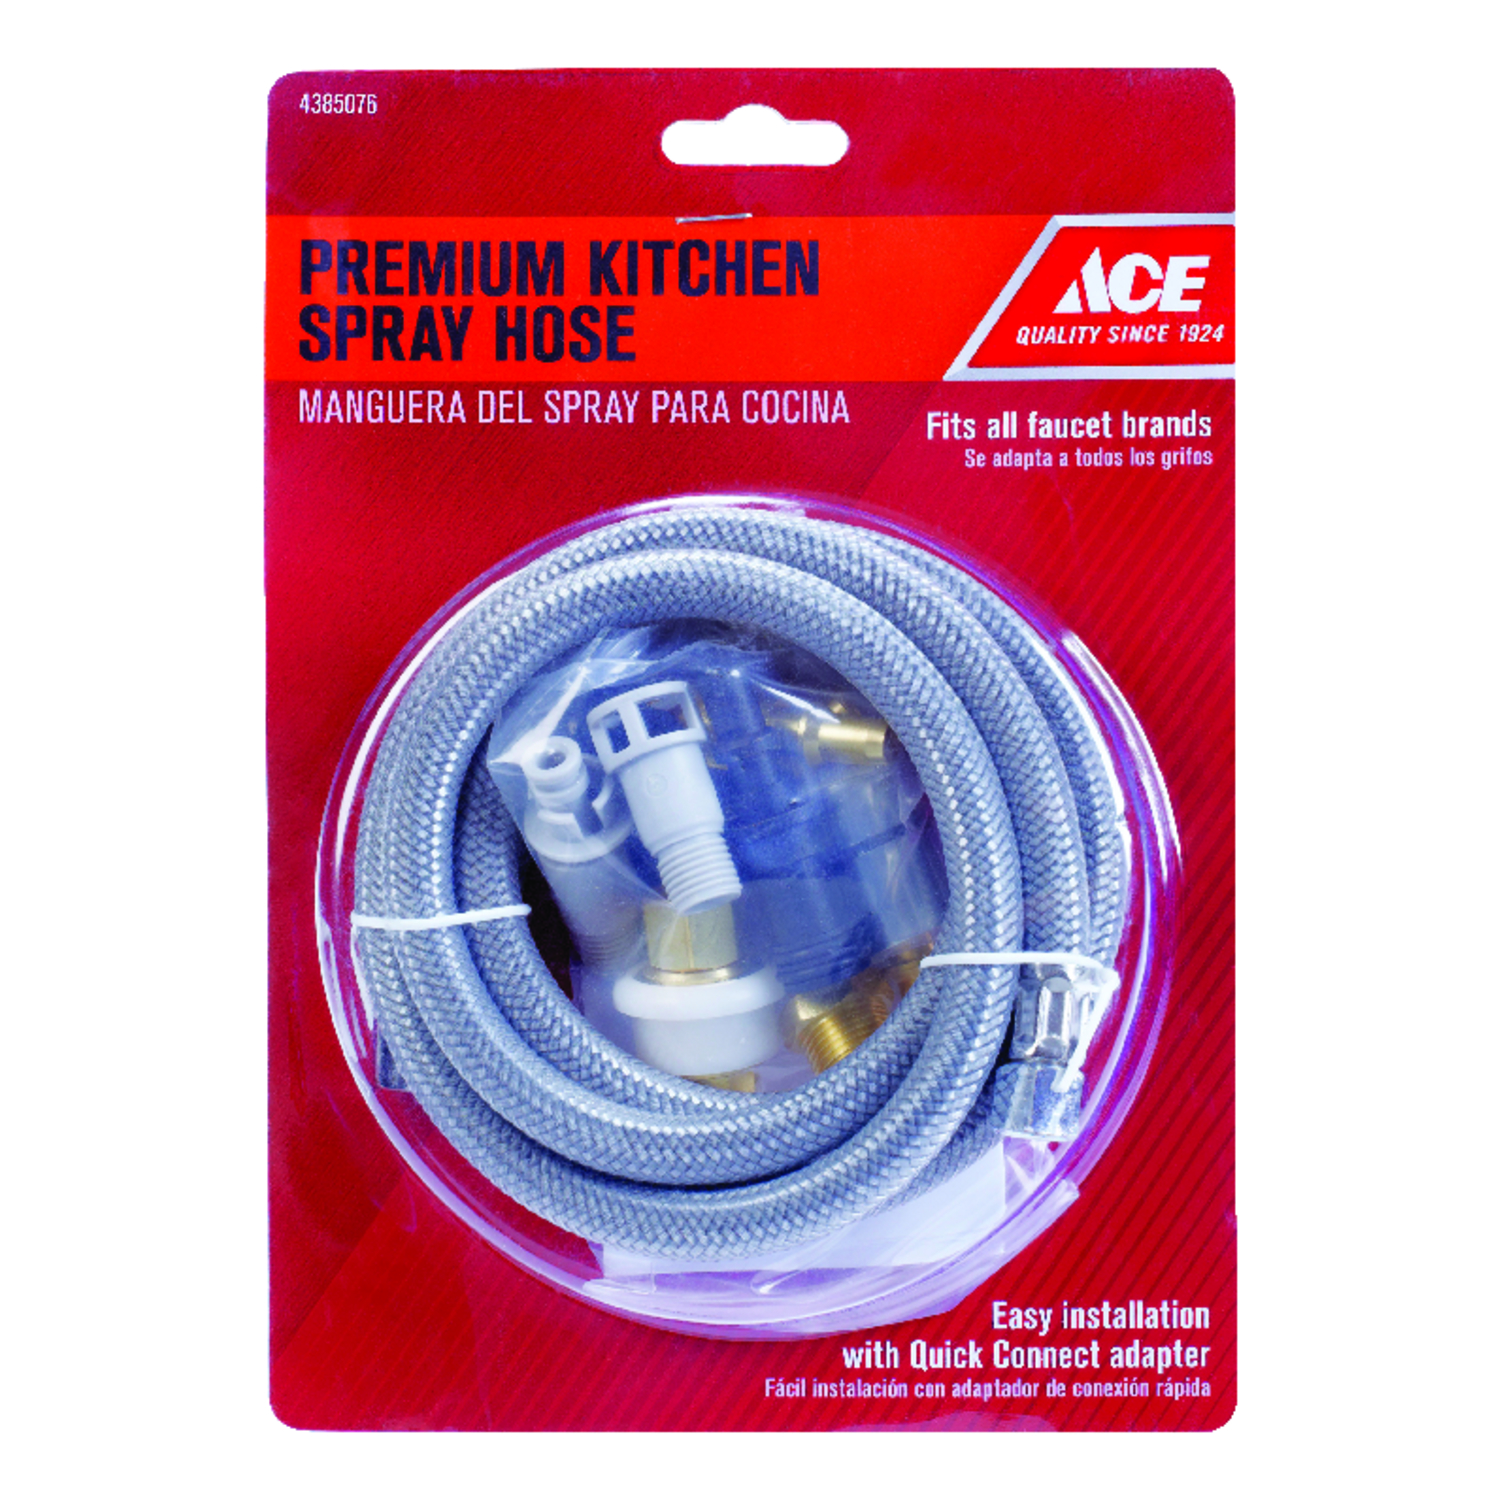 Ace Gray Other Chrome Spray Hose Pull out faucet head to the faucet ...